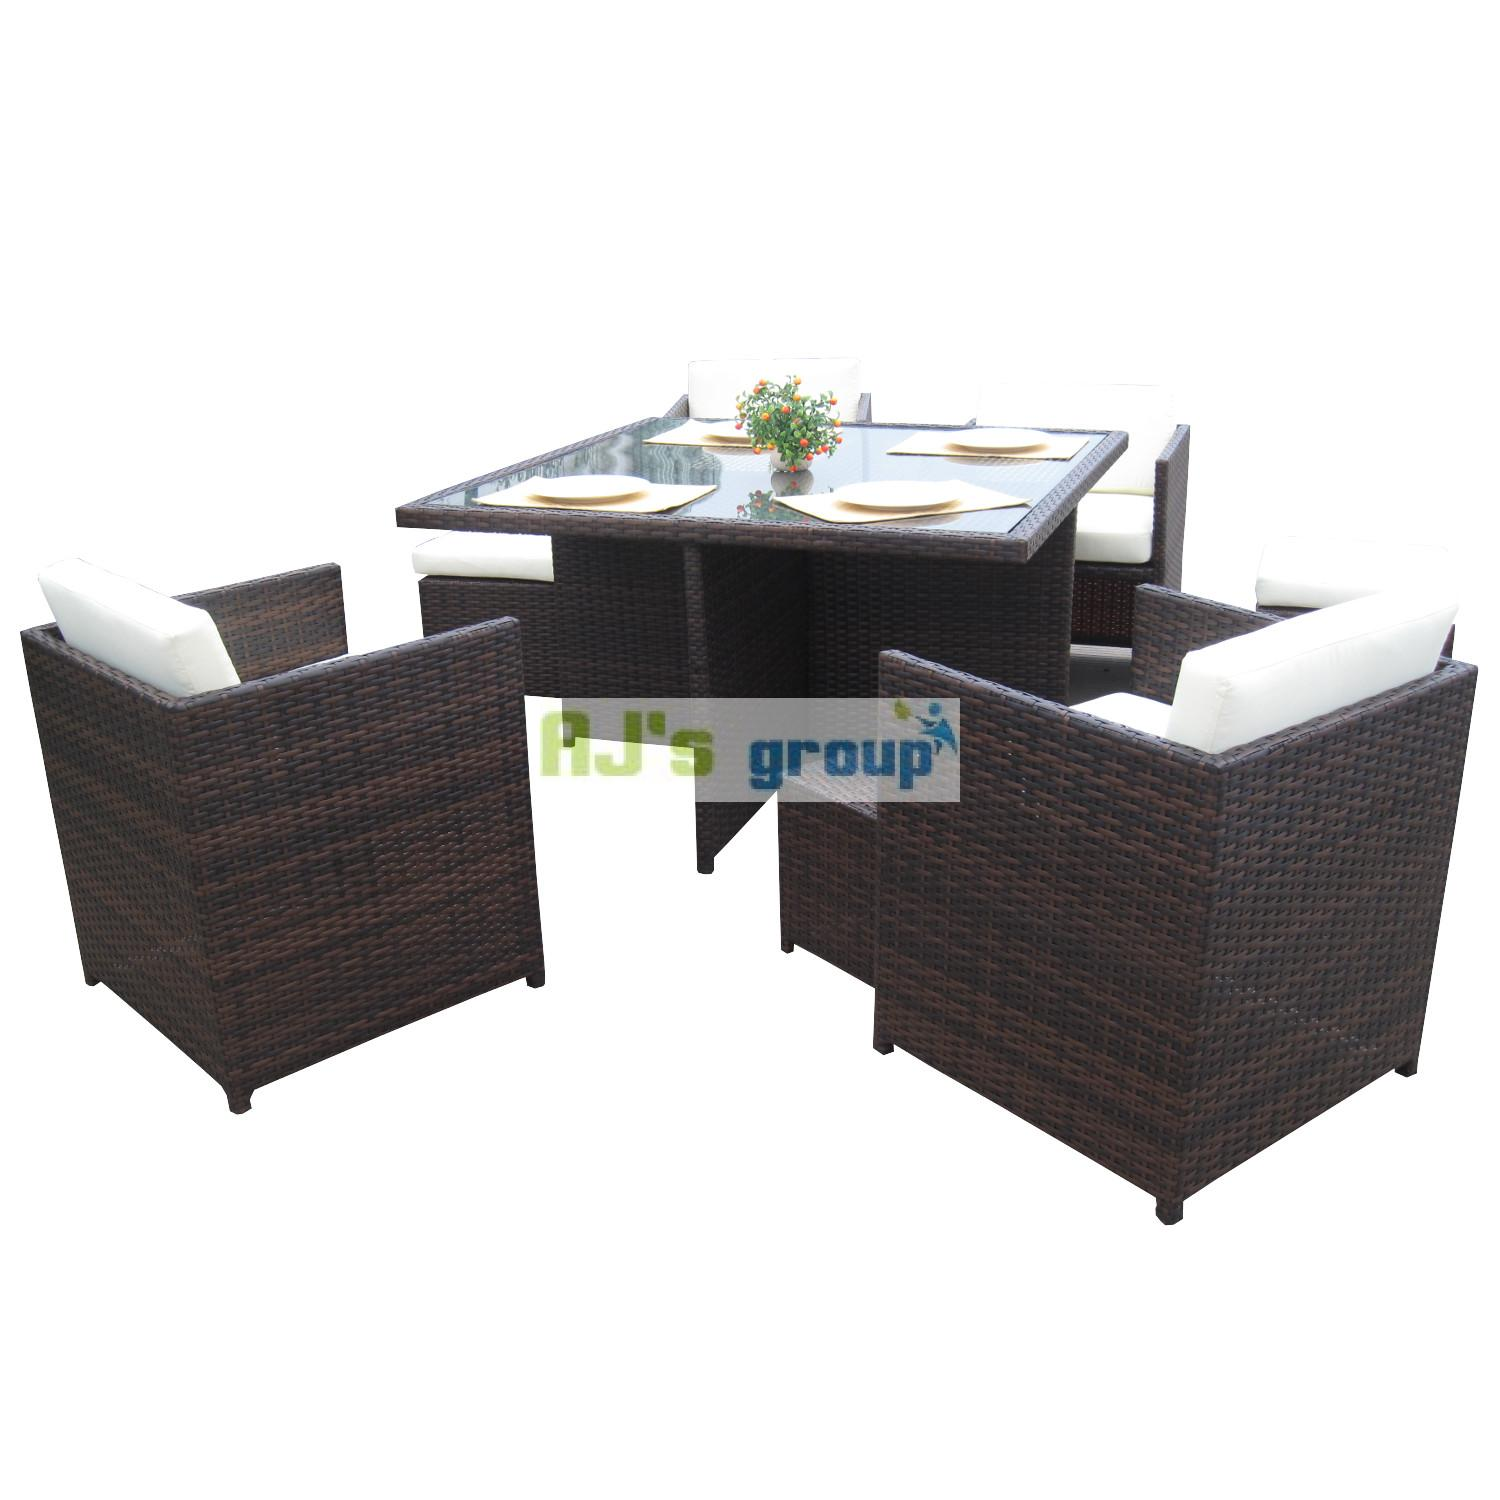 poly rattan essgruppe san jose alu gartenm bel garnitur lounge garten sitzgruppe ebay. Black Bedroom Furniture Sets. Home Design Ideas